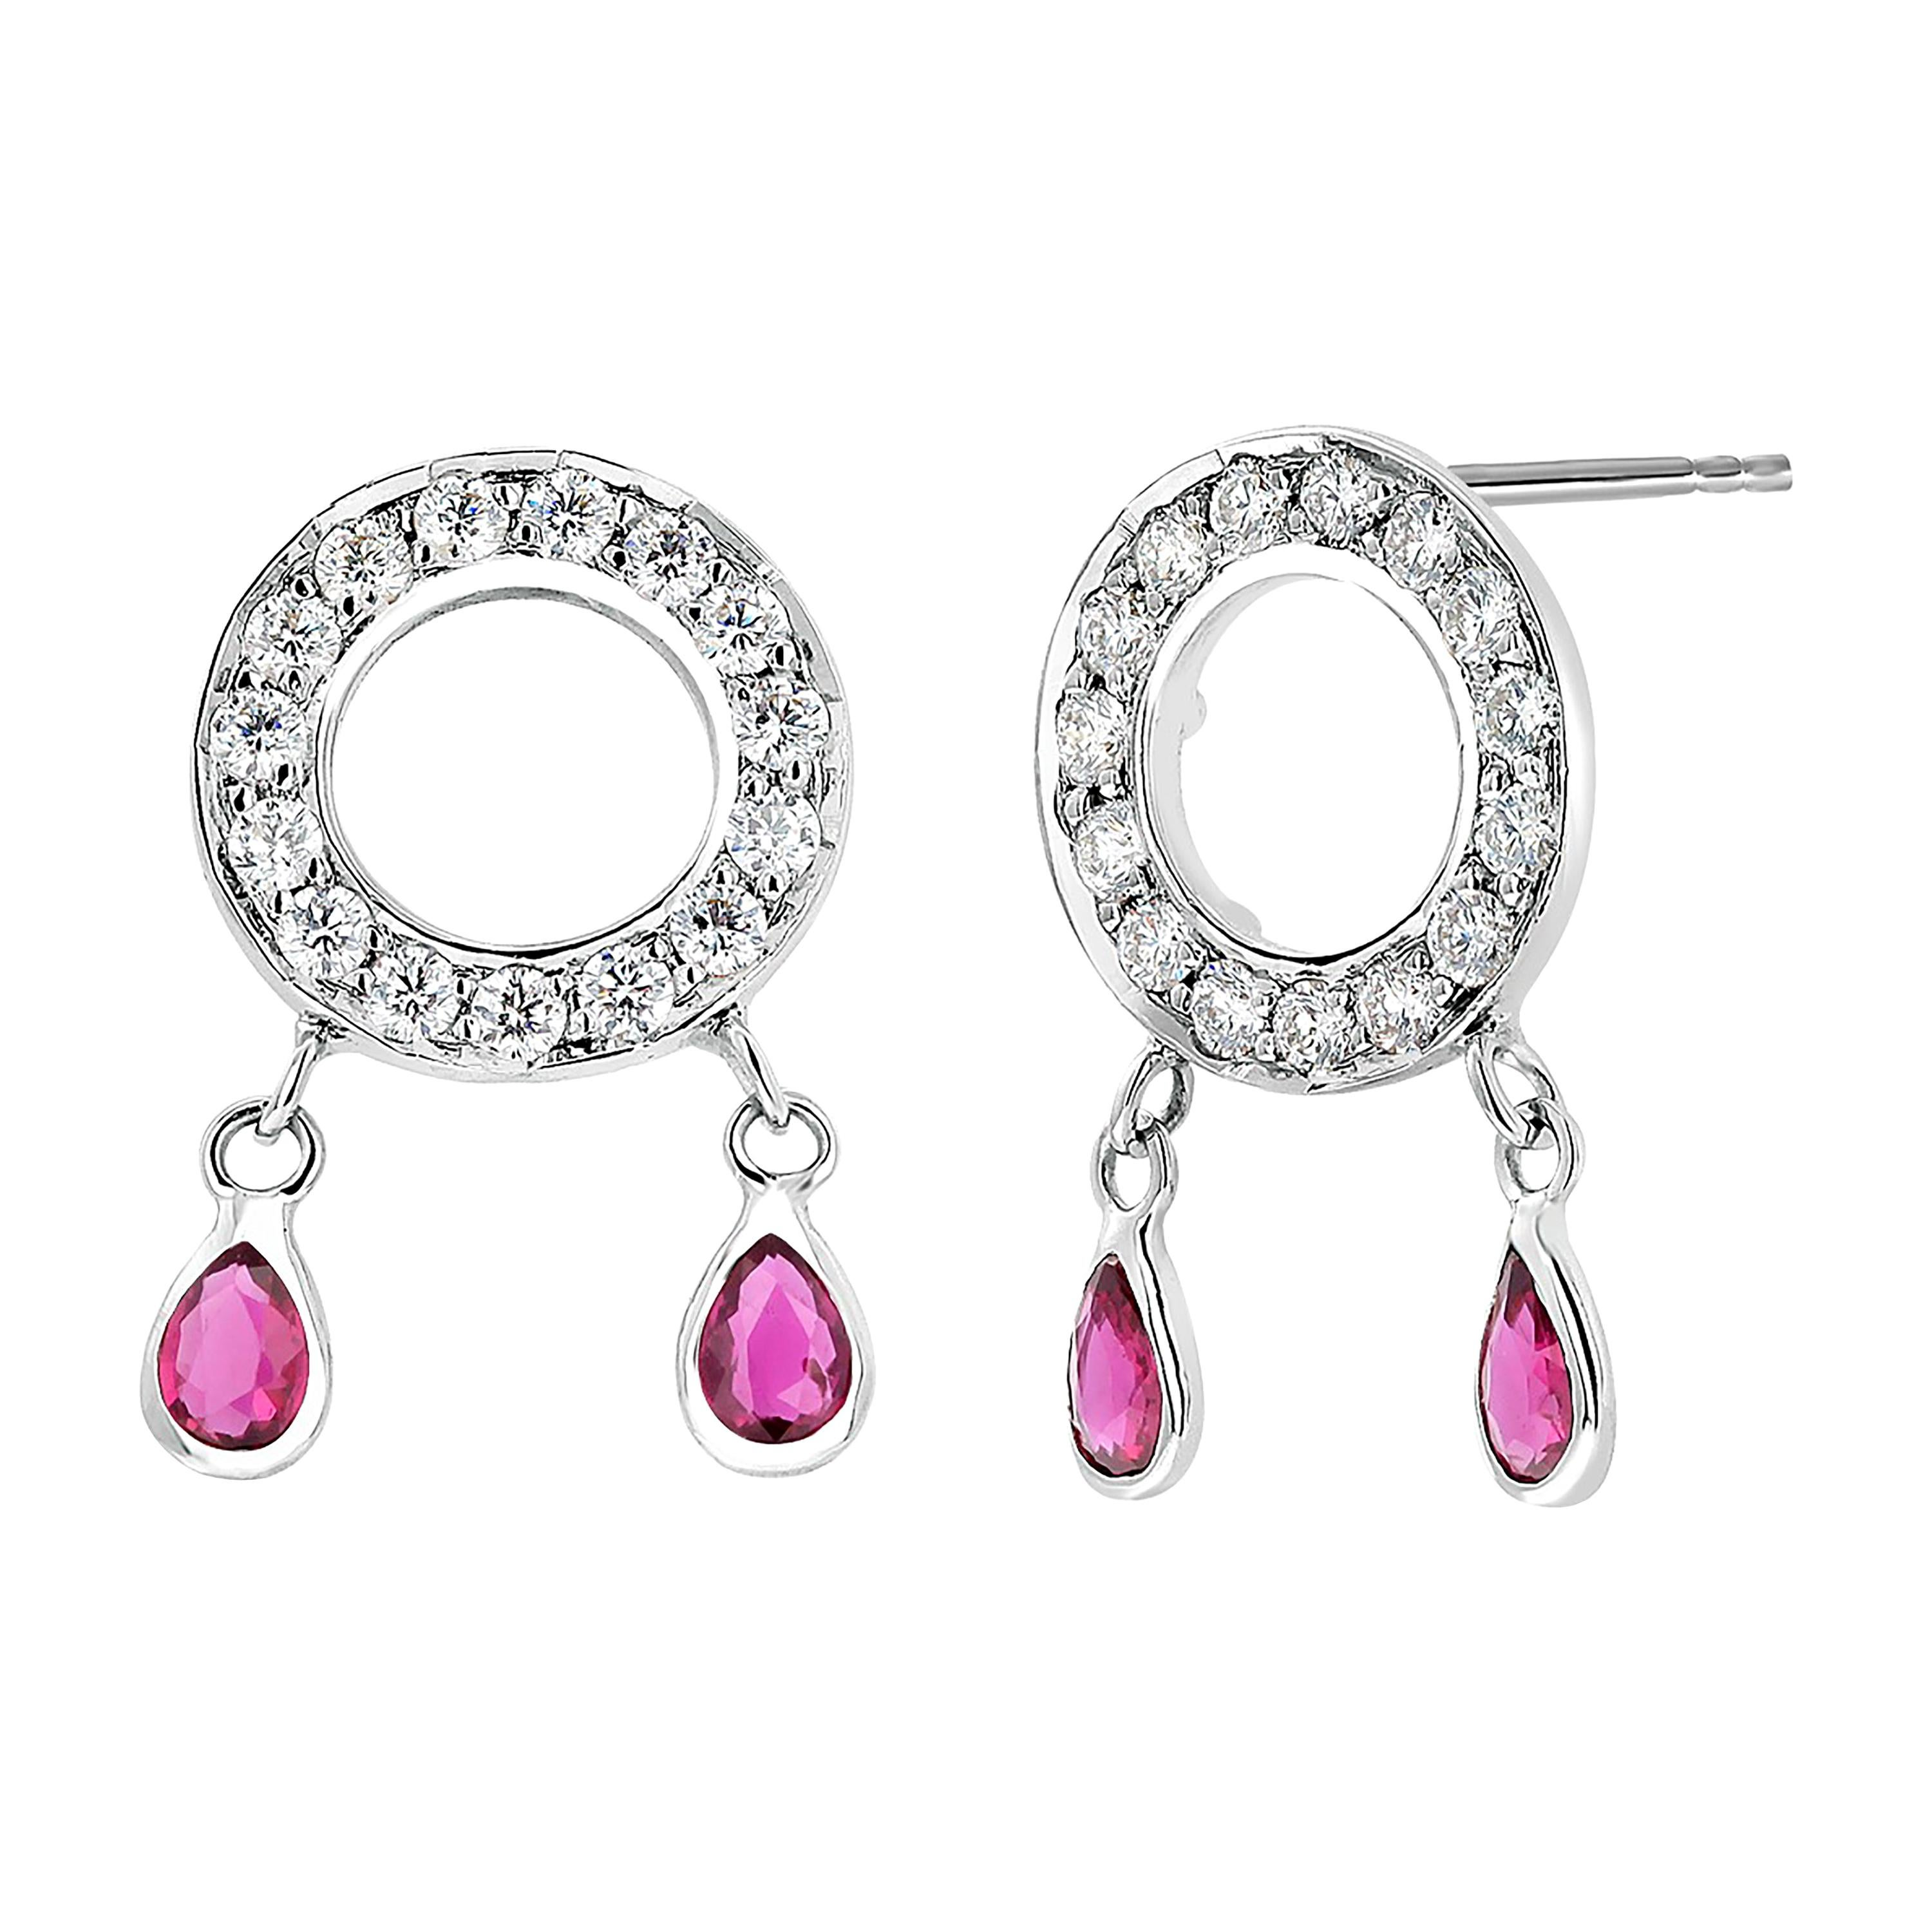 Four Pear-Shaped Dangle Ruby and Diamond White Gold Circle Cluster Earrings